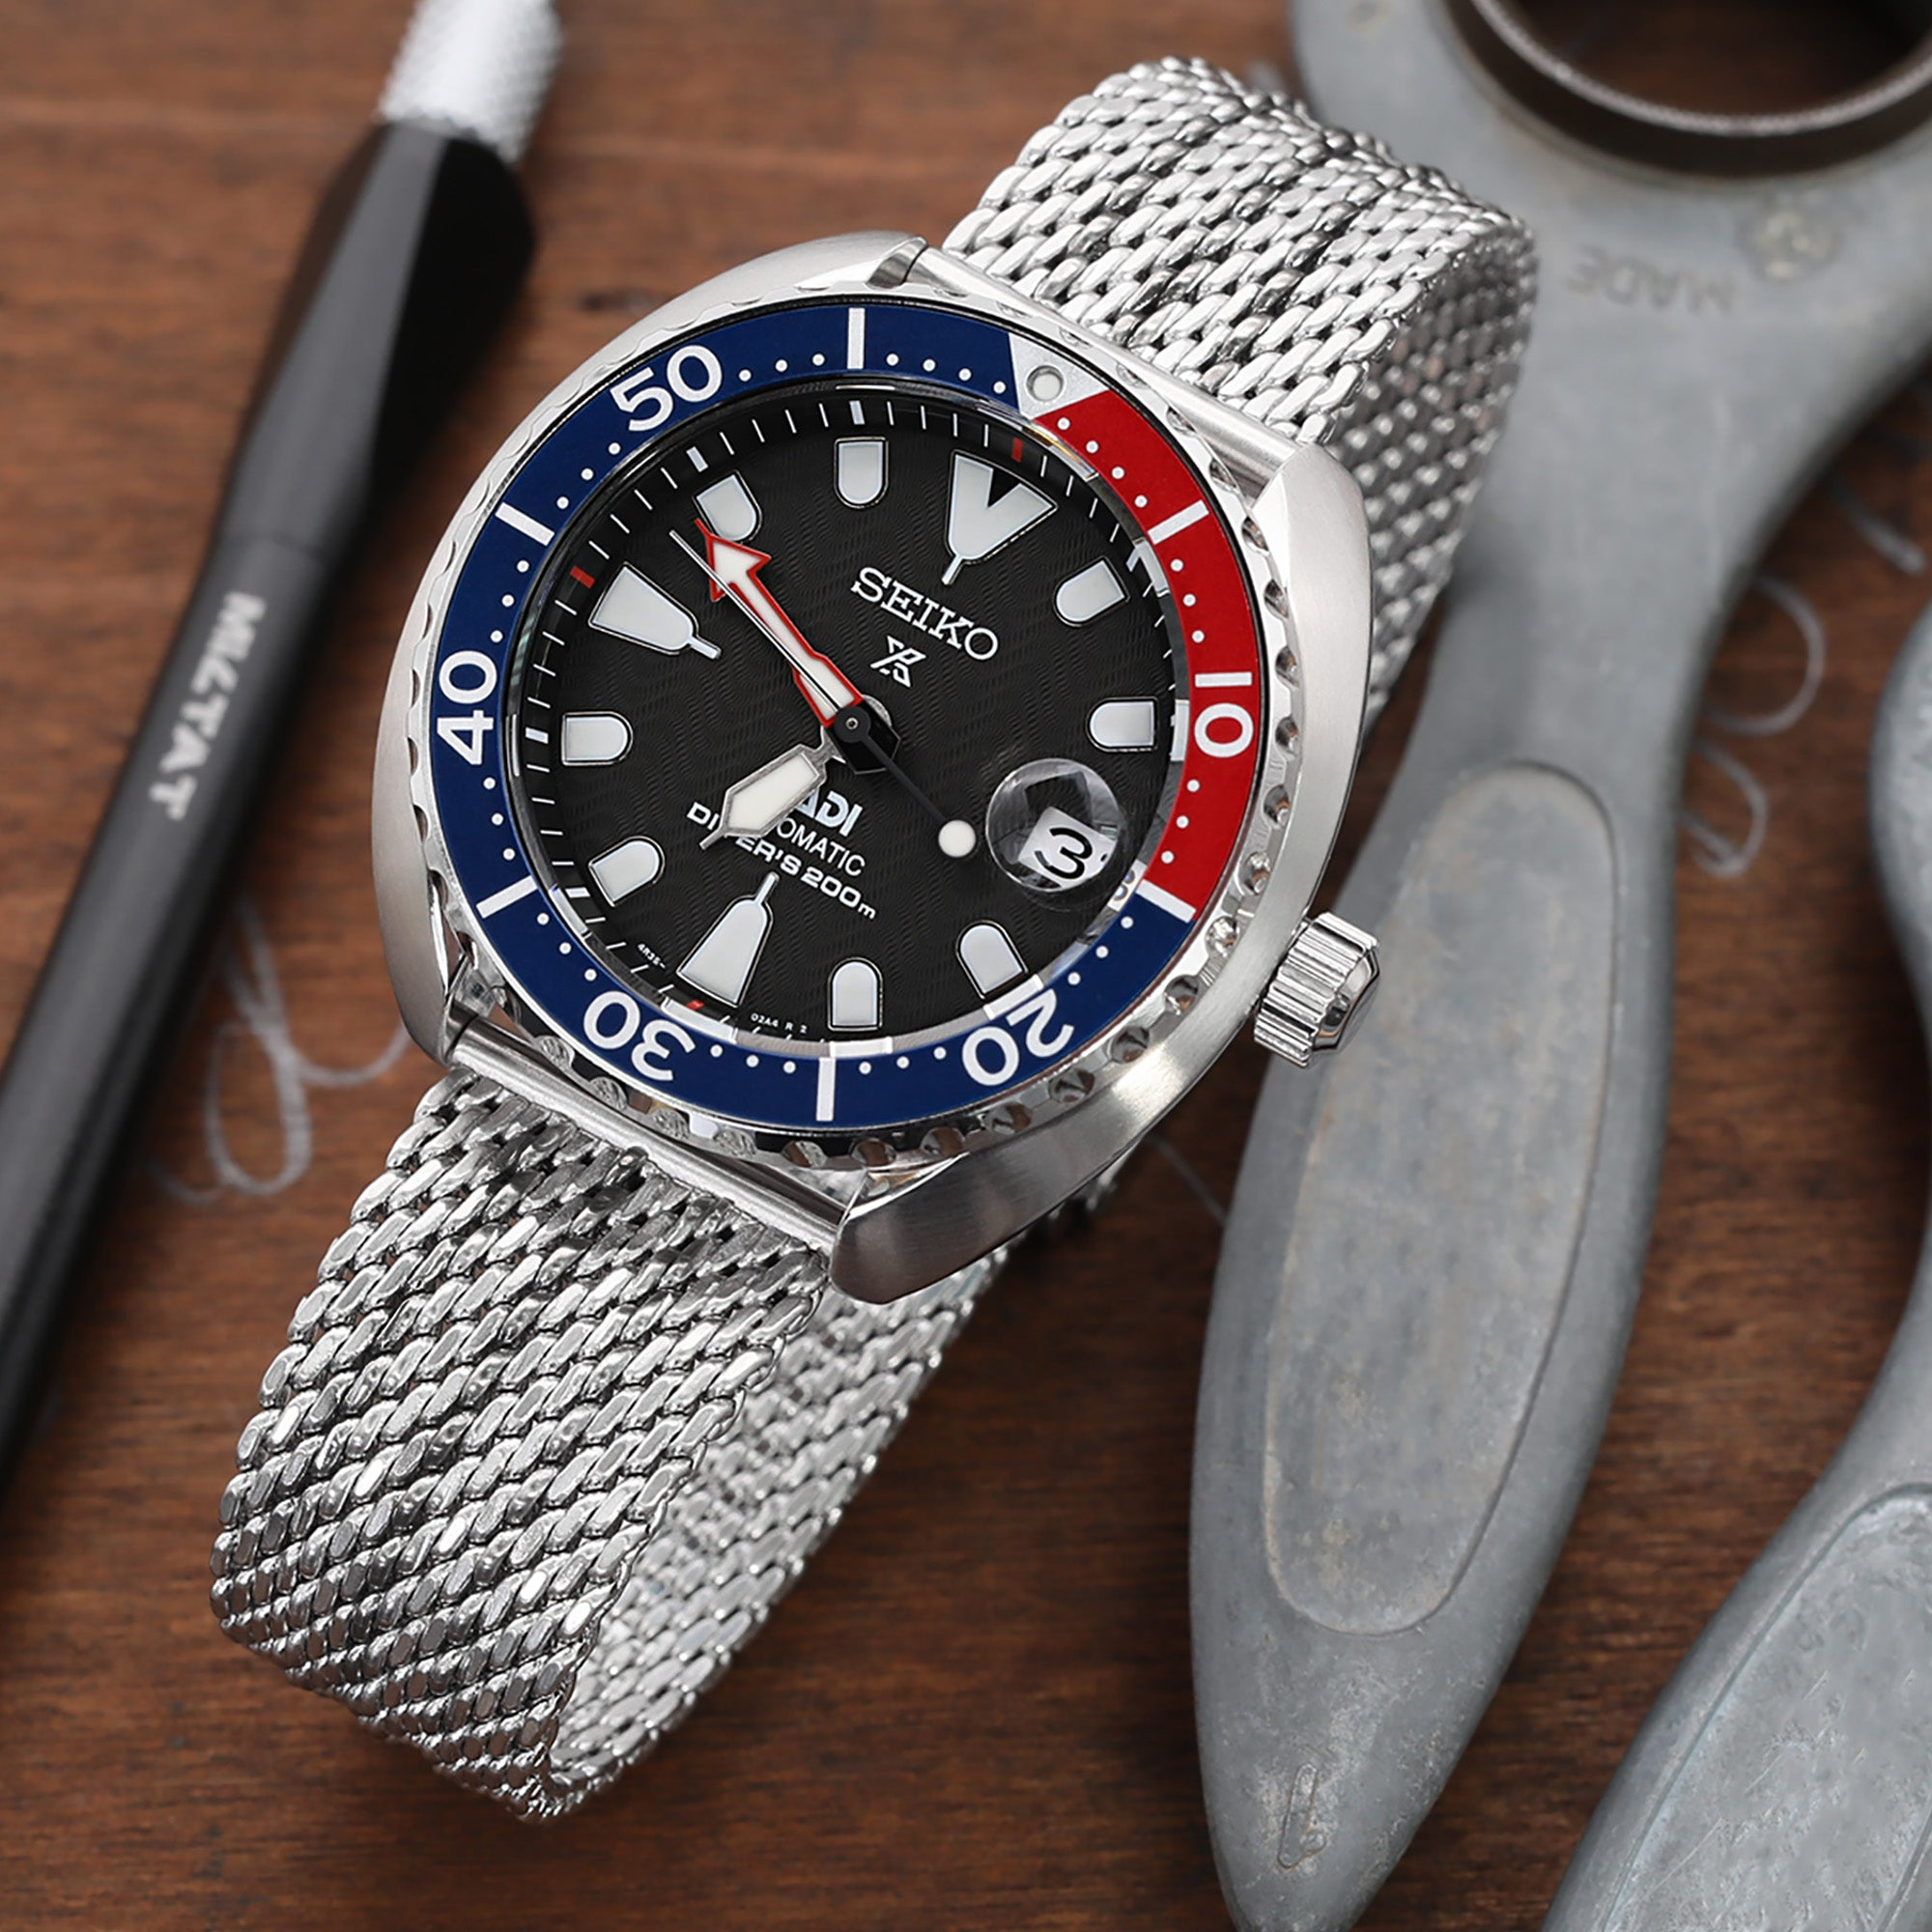 Seiko Mini-Turtle Prospex Automatic Dive Watch SPRC41K1 (PADI Edition)